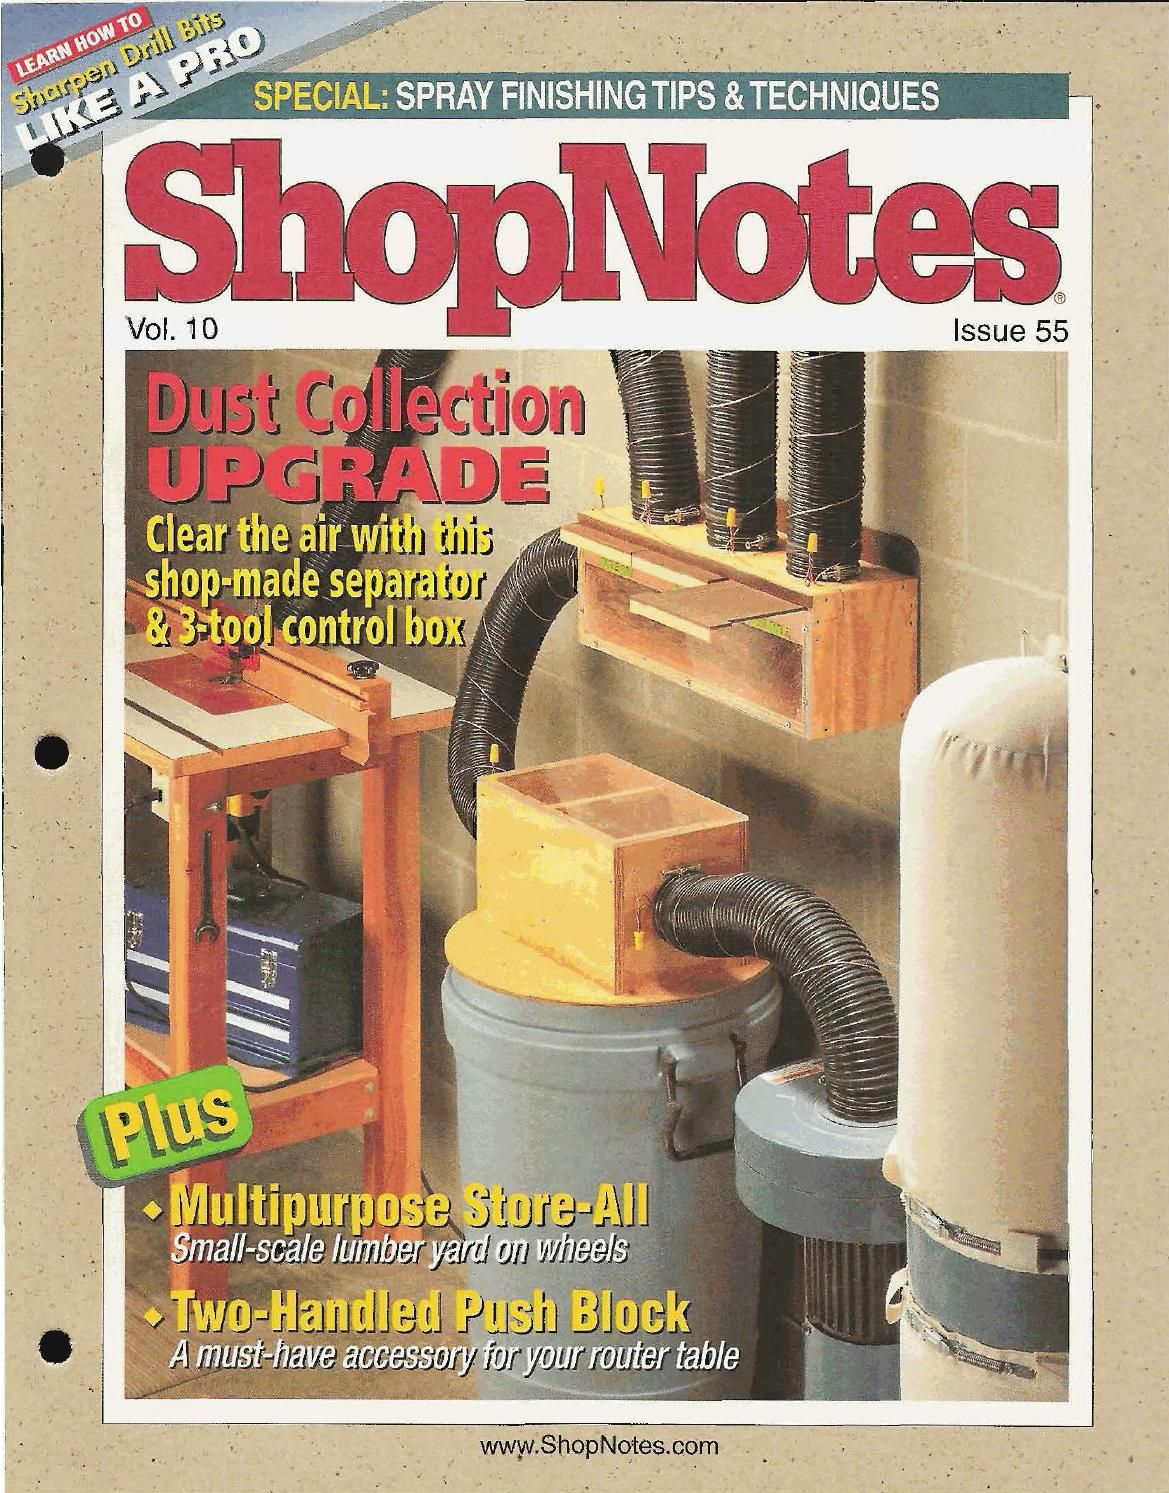 Shopnotes issue 55 by adrian kuney shopnotes pinterest shopnotes issue 55 by adrian kuney greentooth Choice Image